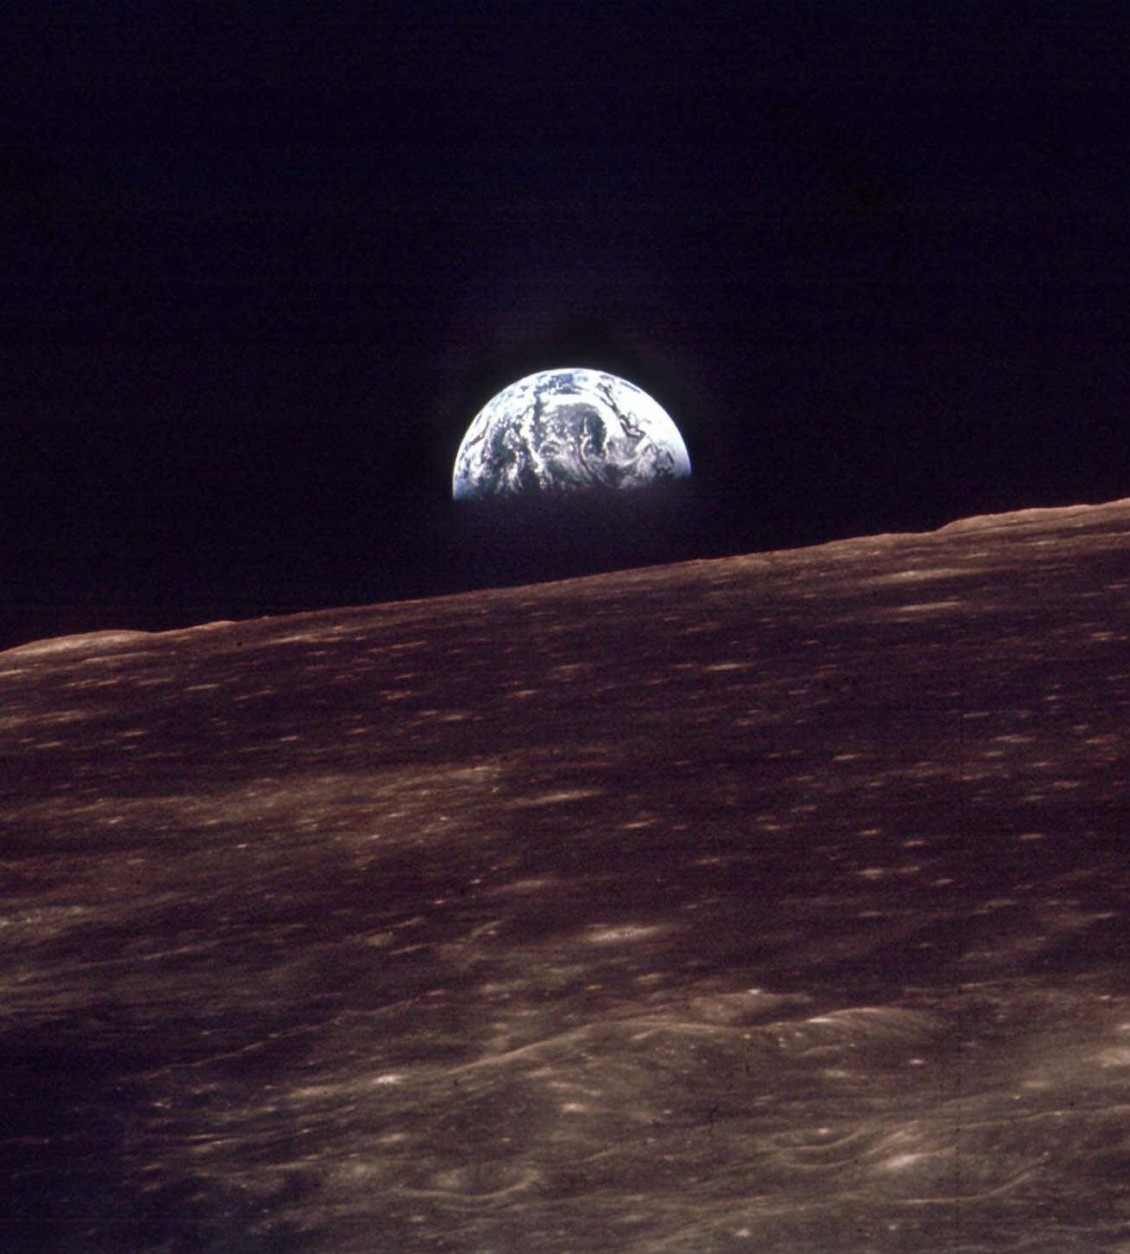 The Earth shines over the horizon of the Moon in this Dec. 24, 1968 photo shot by the astronauts on Apollo 8.  Apollo 8 was launched from Cape Canaveral on Dec. 21, 1968.  (AP Photo)